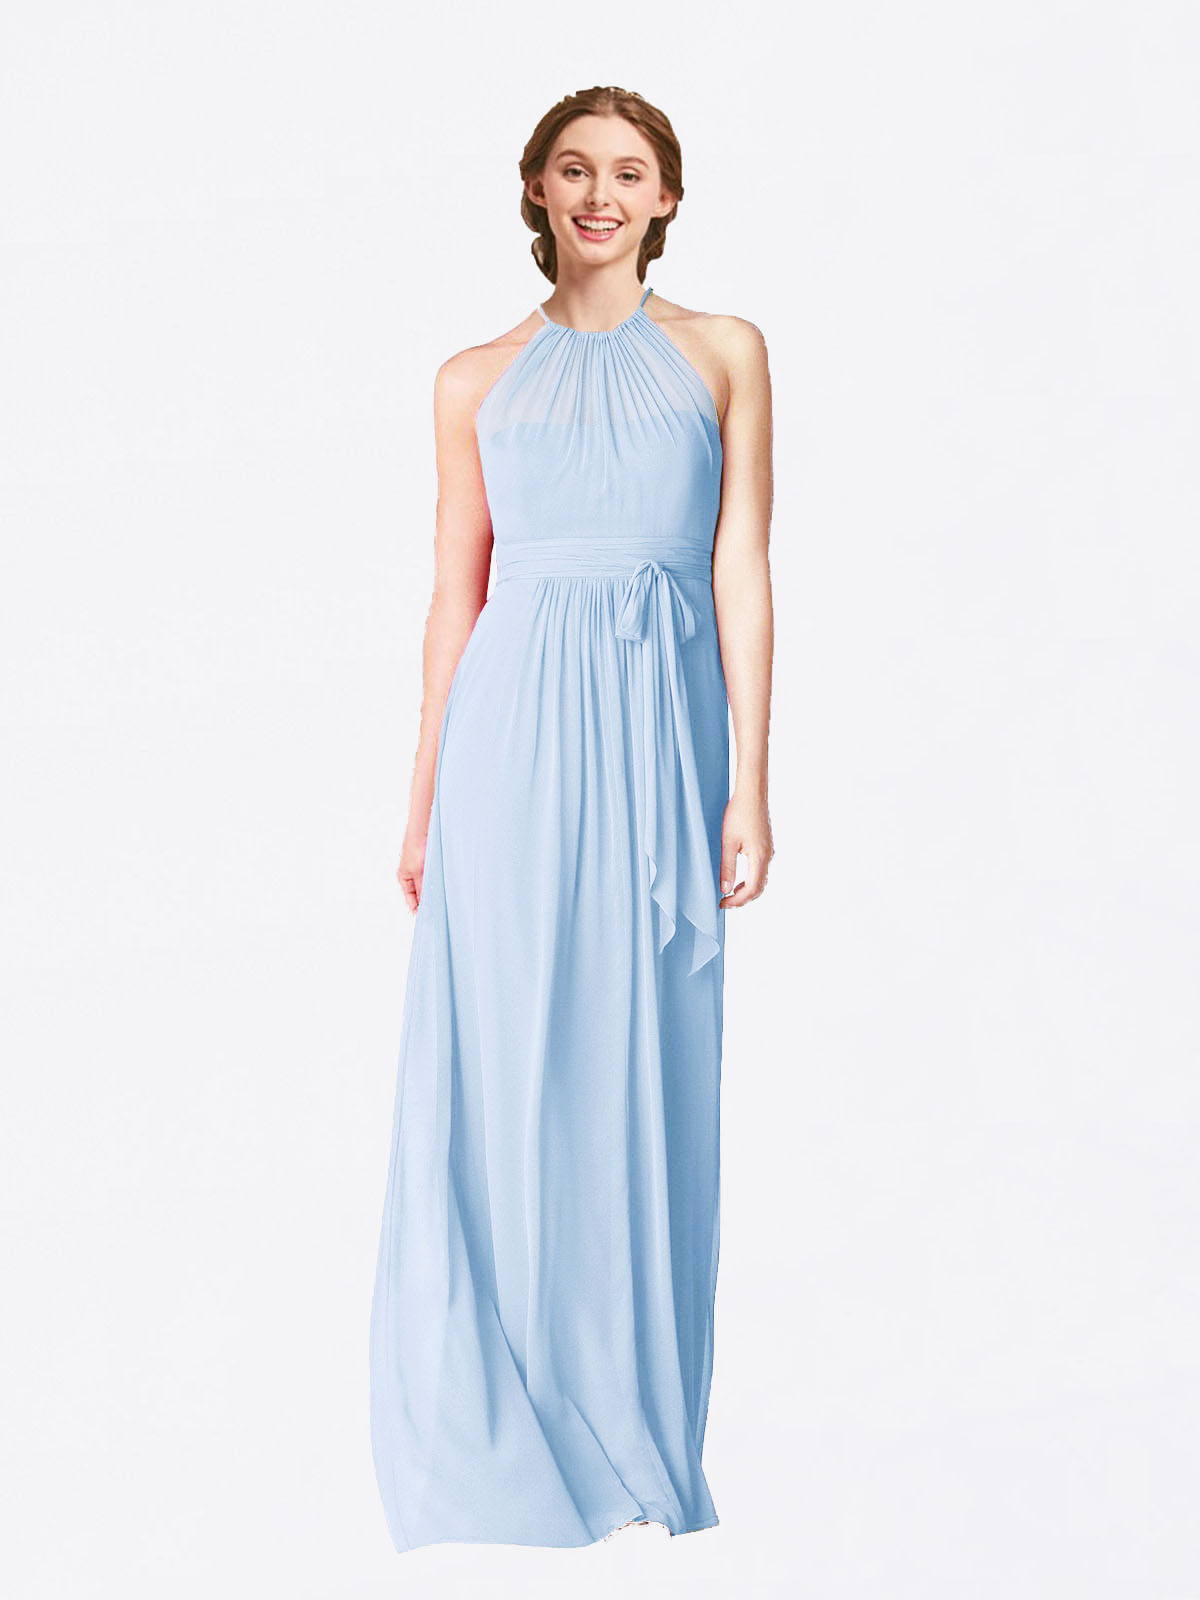 Long A-Line Halter Sleeveless Light Sky Blue Chiffon Bridesmaid Dress Laura